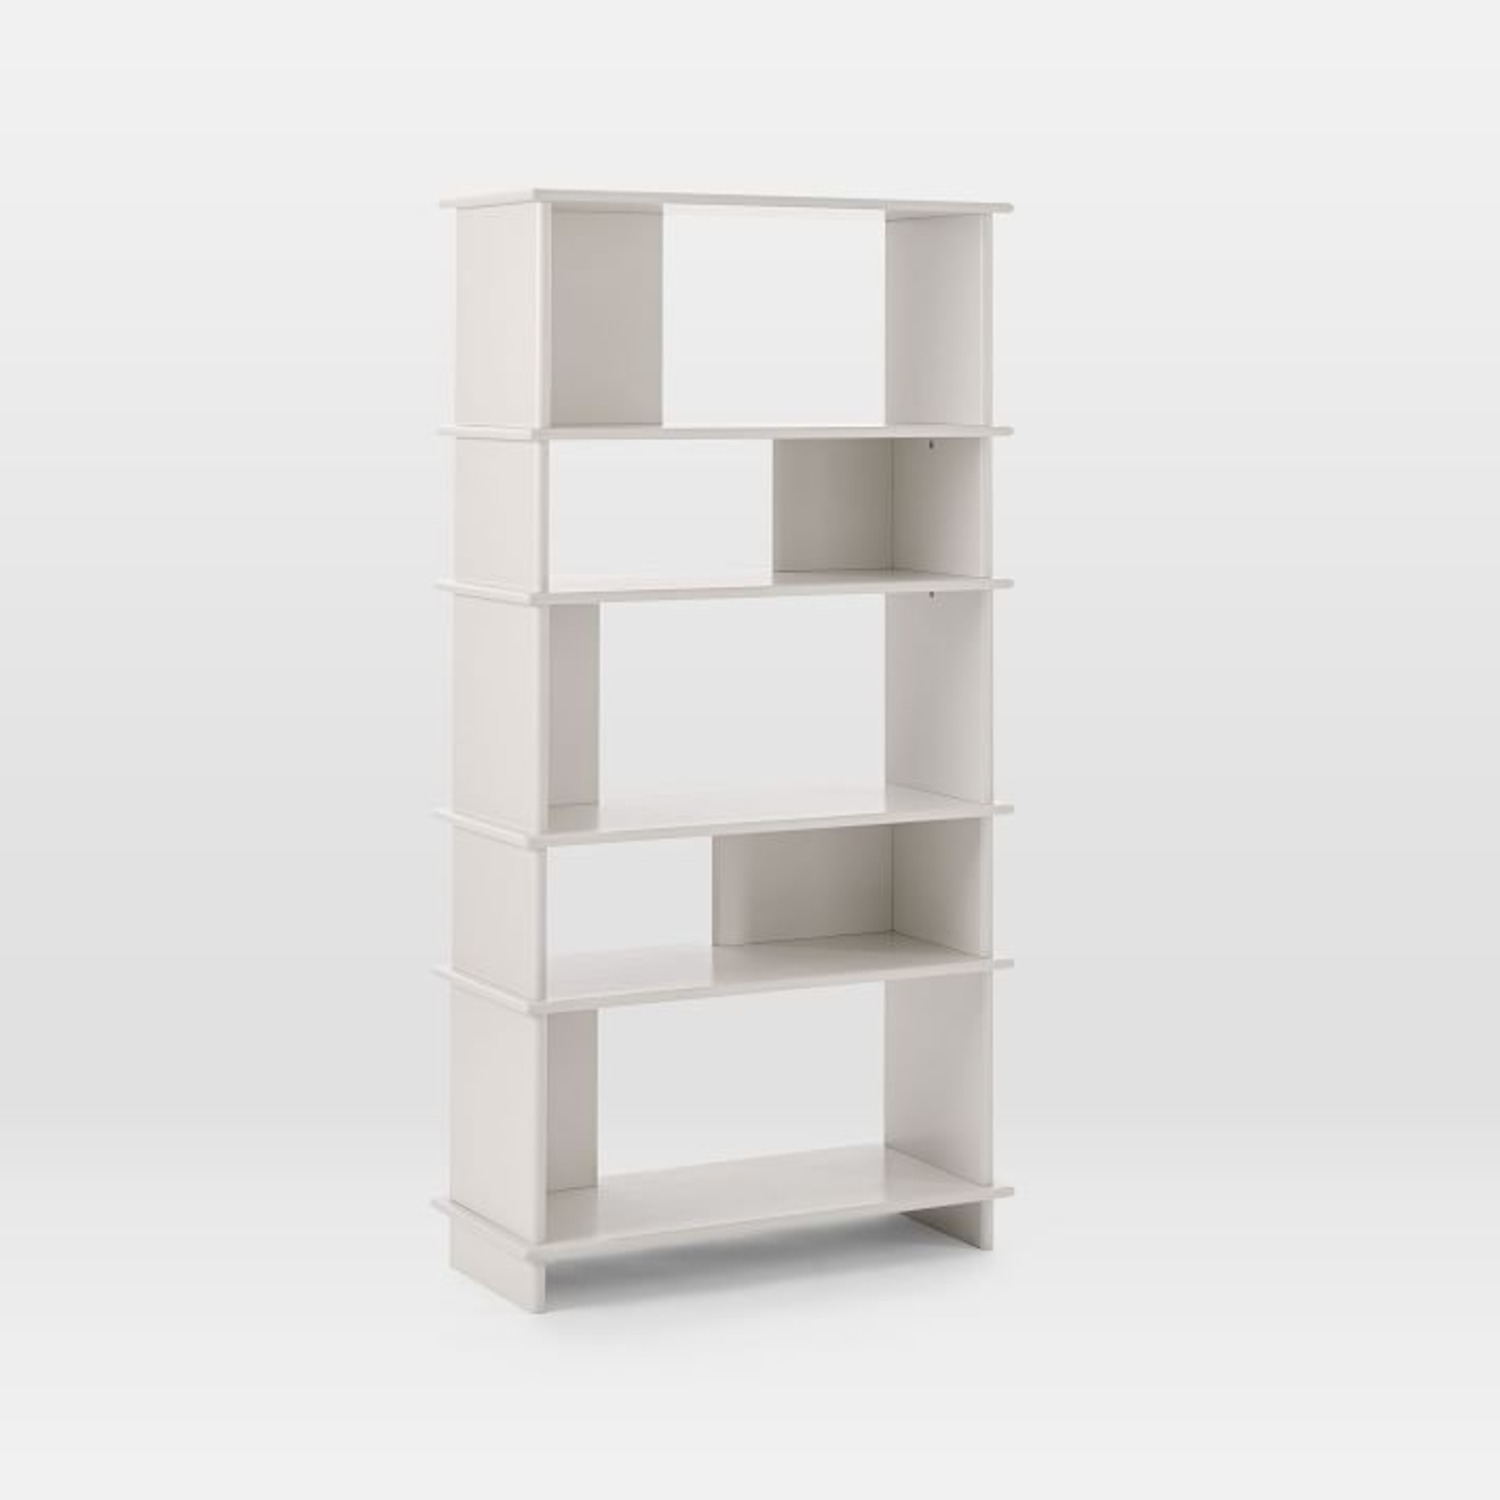 West Elm Kaira Wide Bookcase - Oyster - image-1